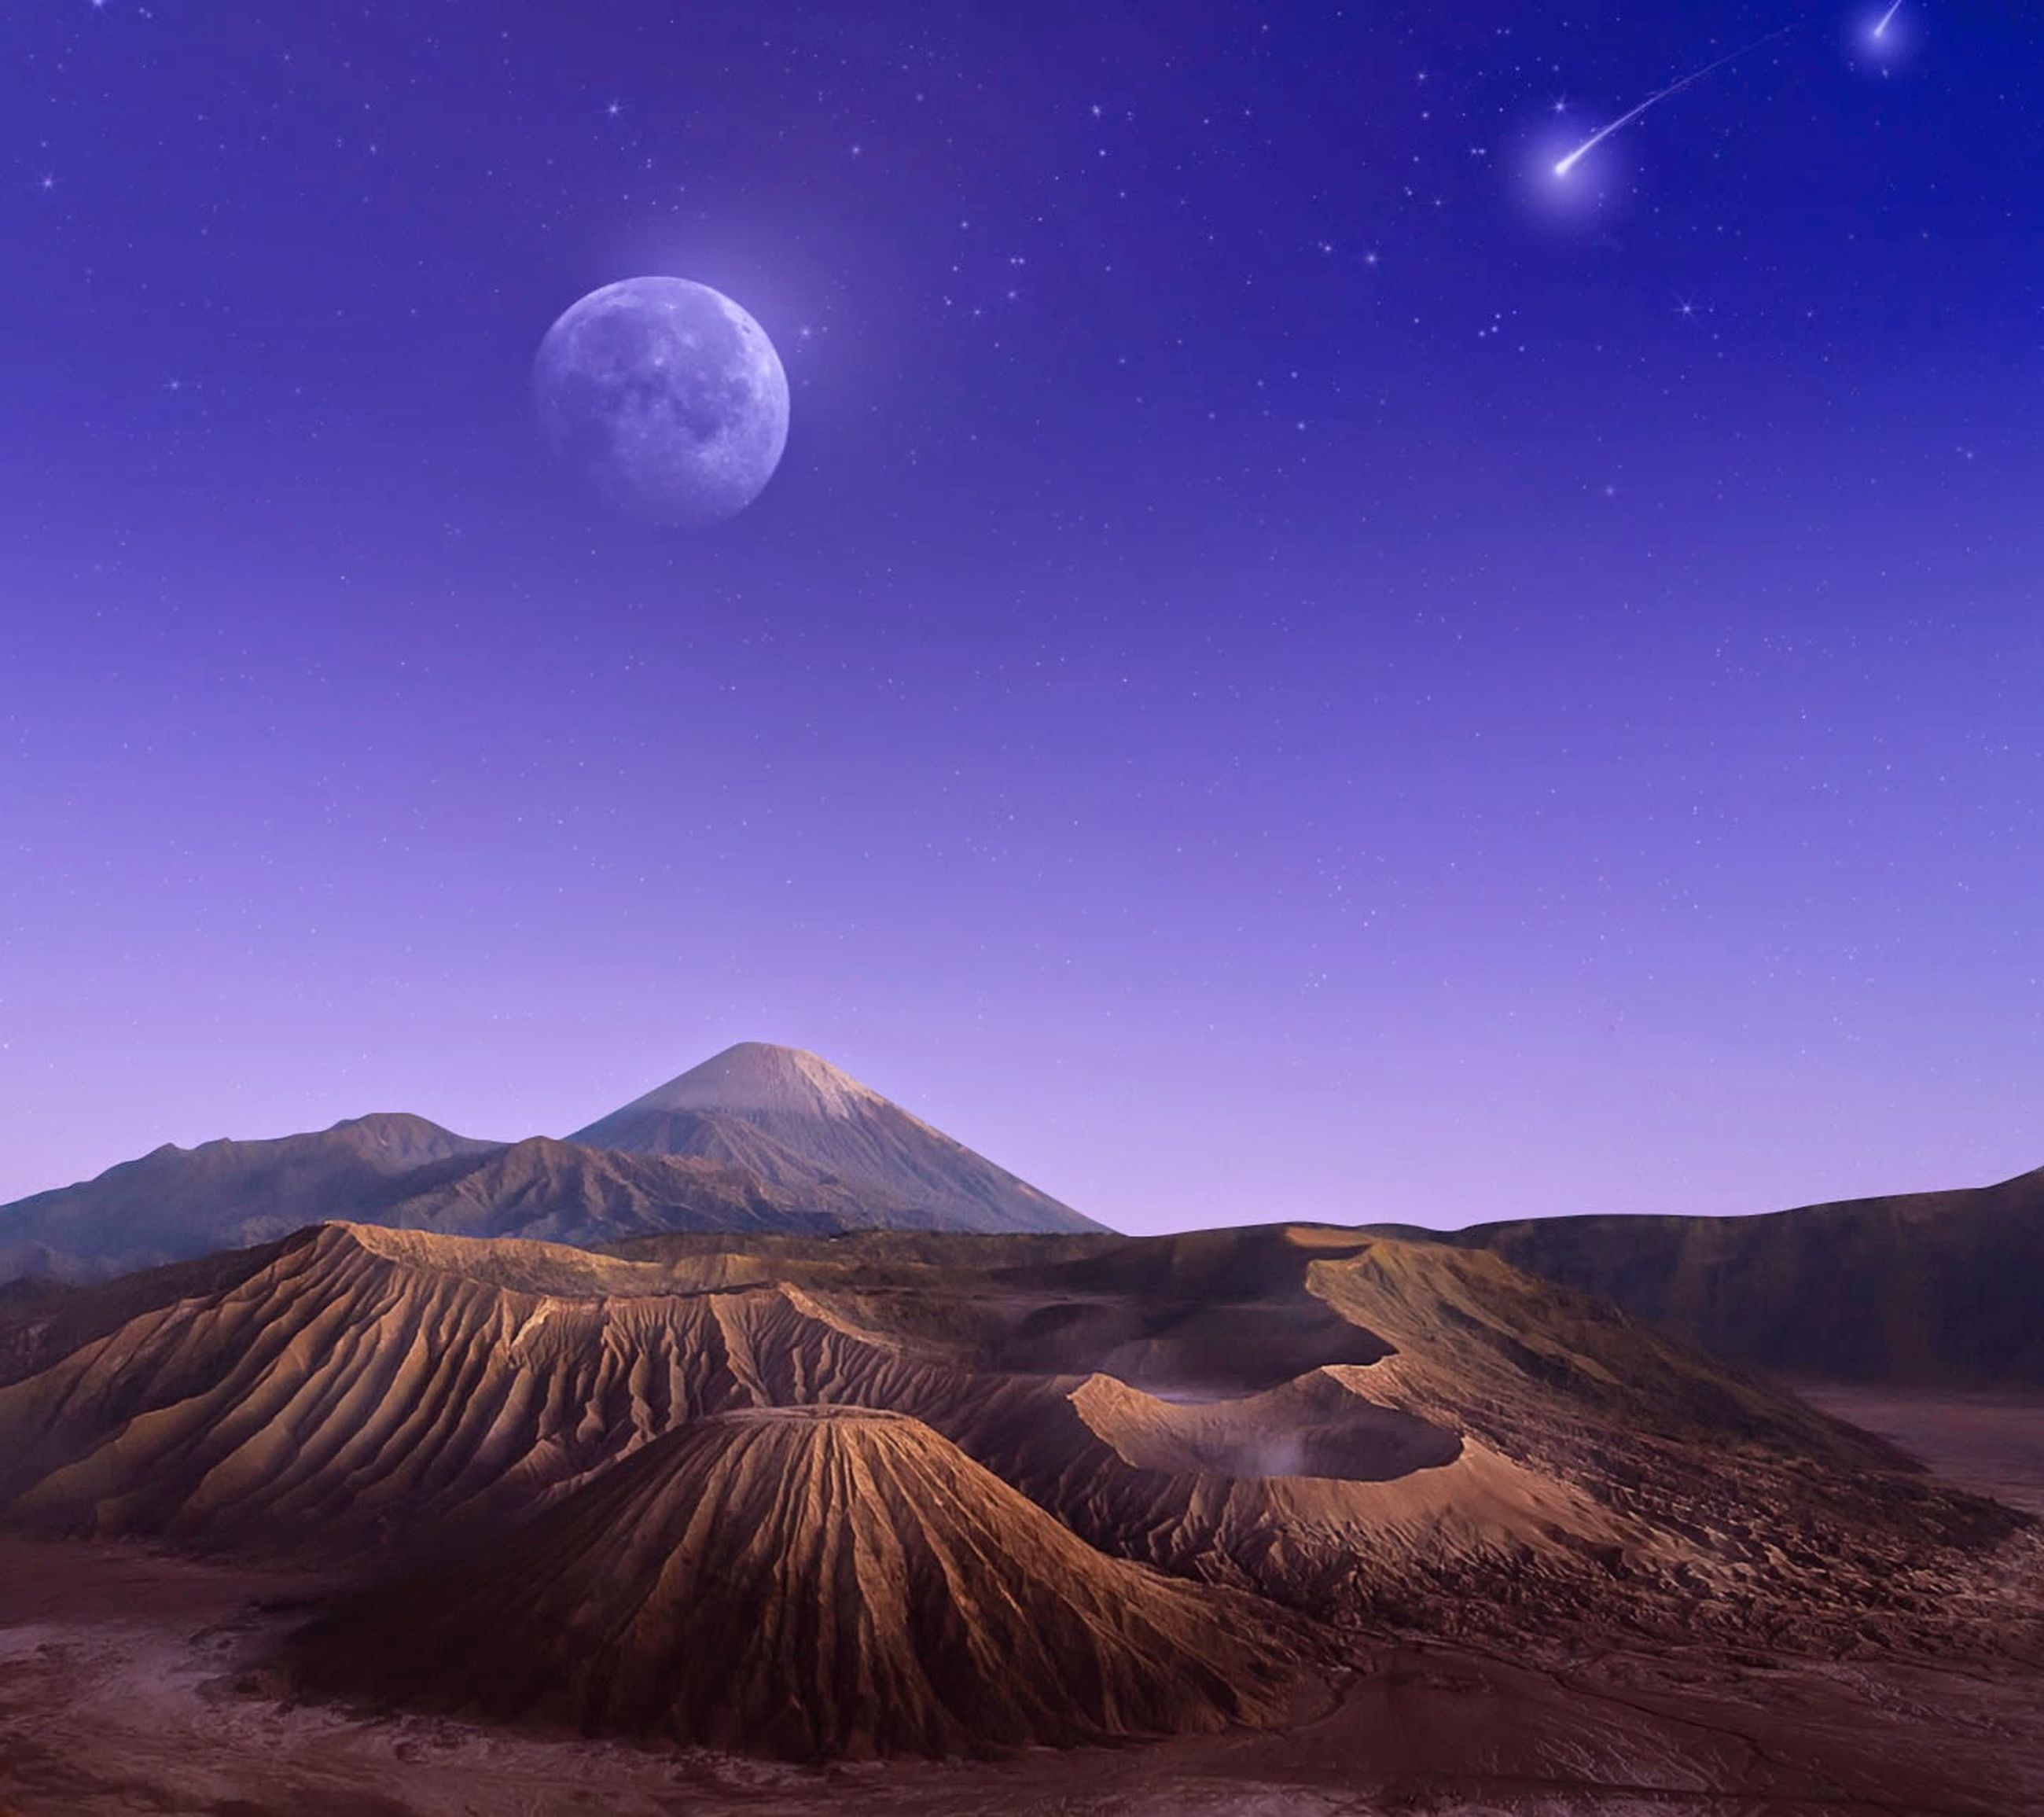 astronomy, night, tranquil scene, scenics, tranquility, beauty in nature, star - space, moon, landscape, star field, nature, mountain, space, sky, majestic, idyllic, galaxy, mountain range, blue, star